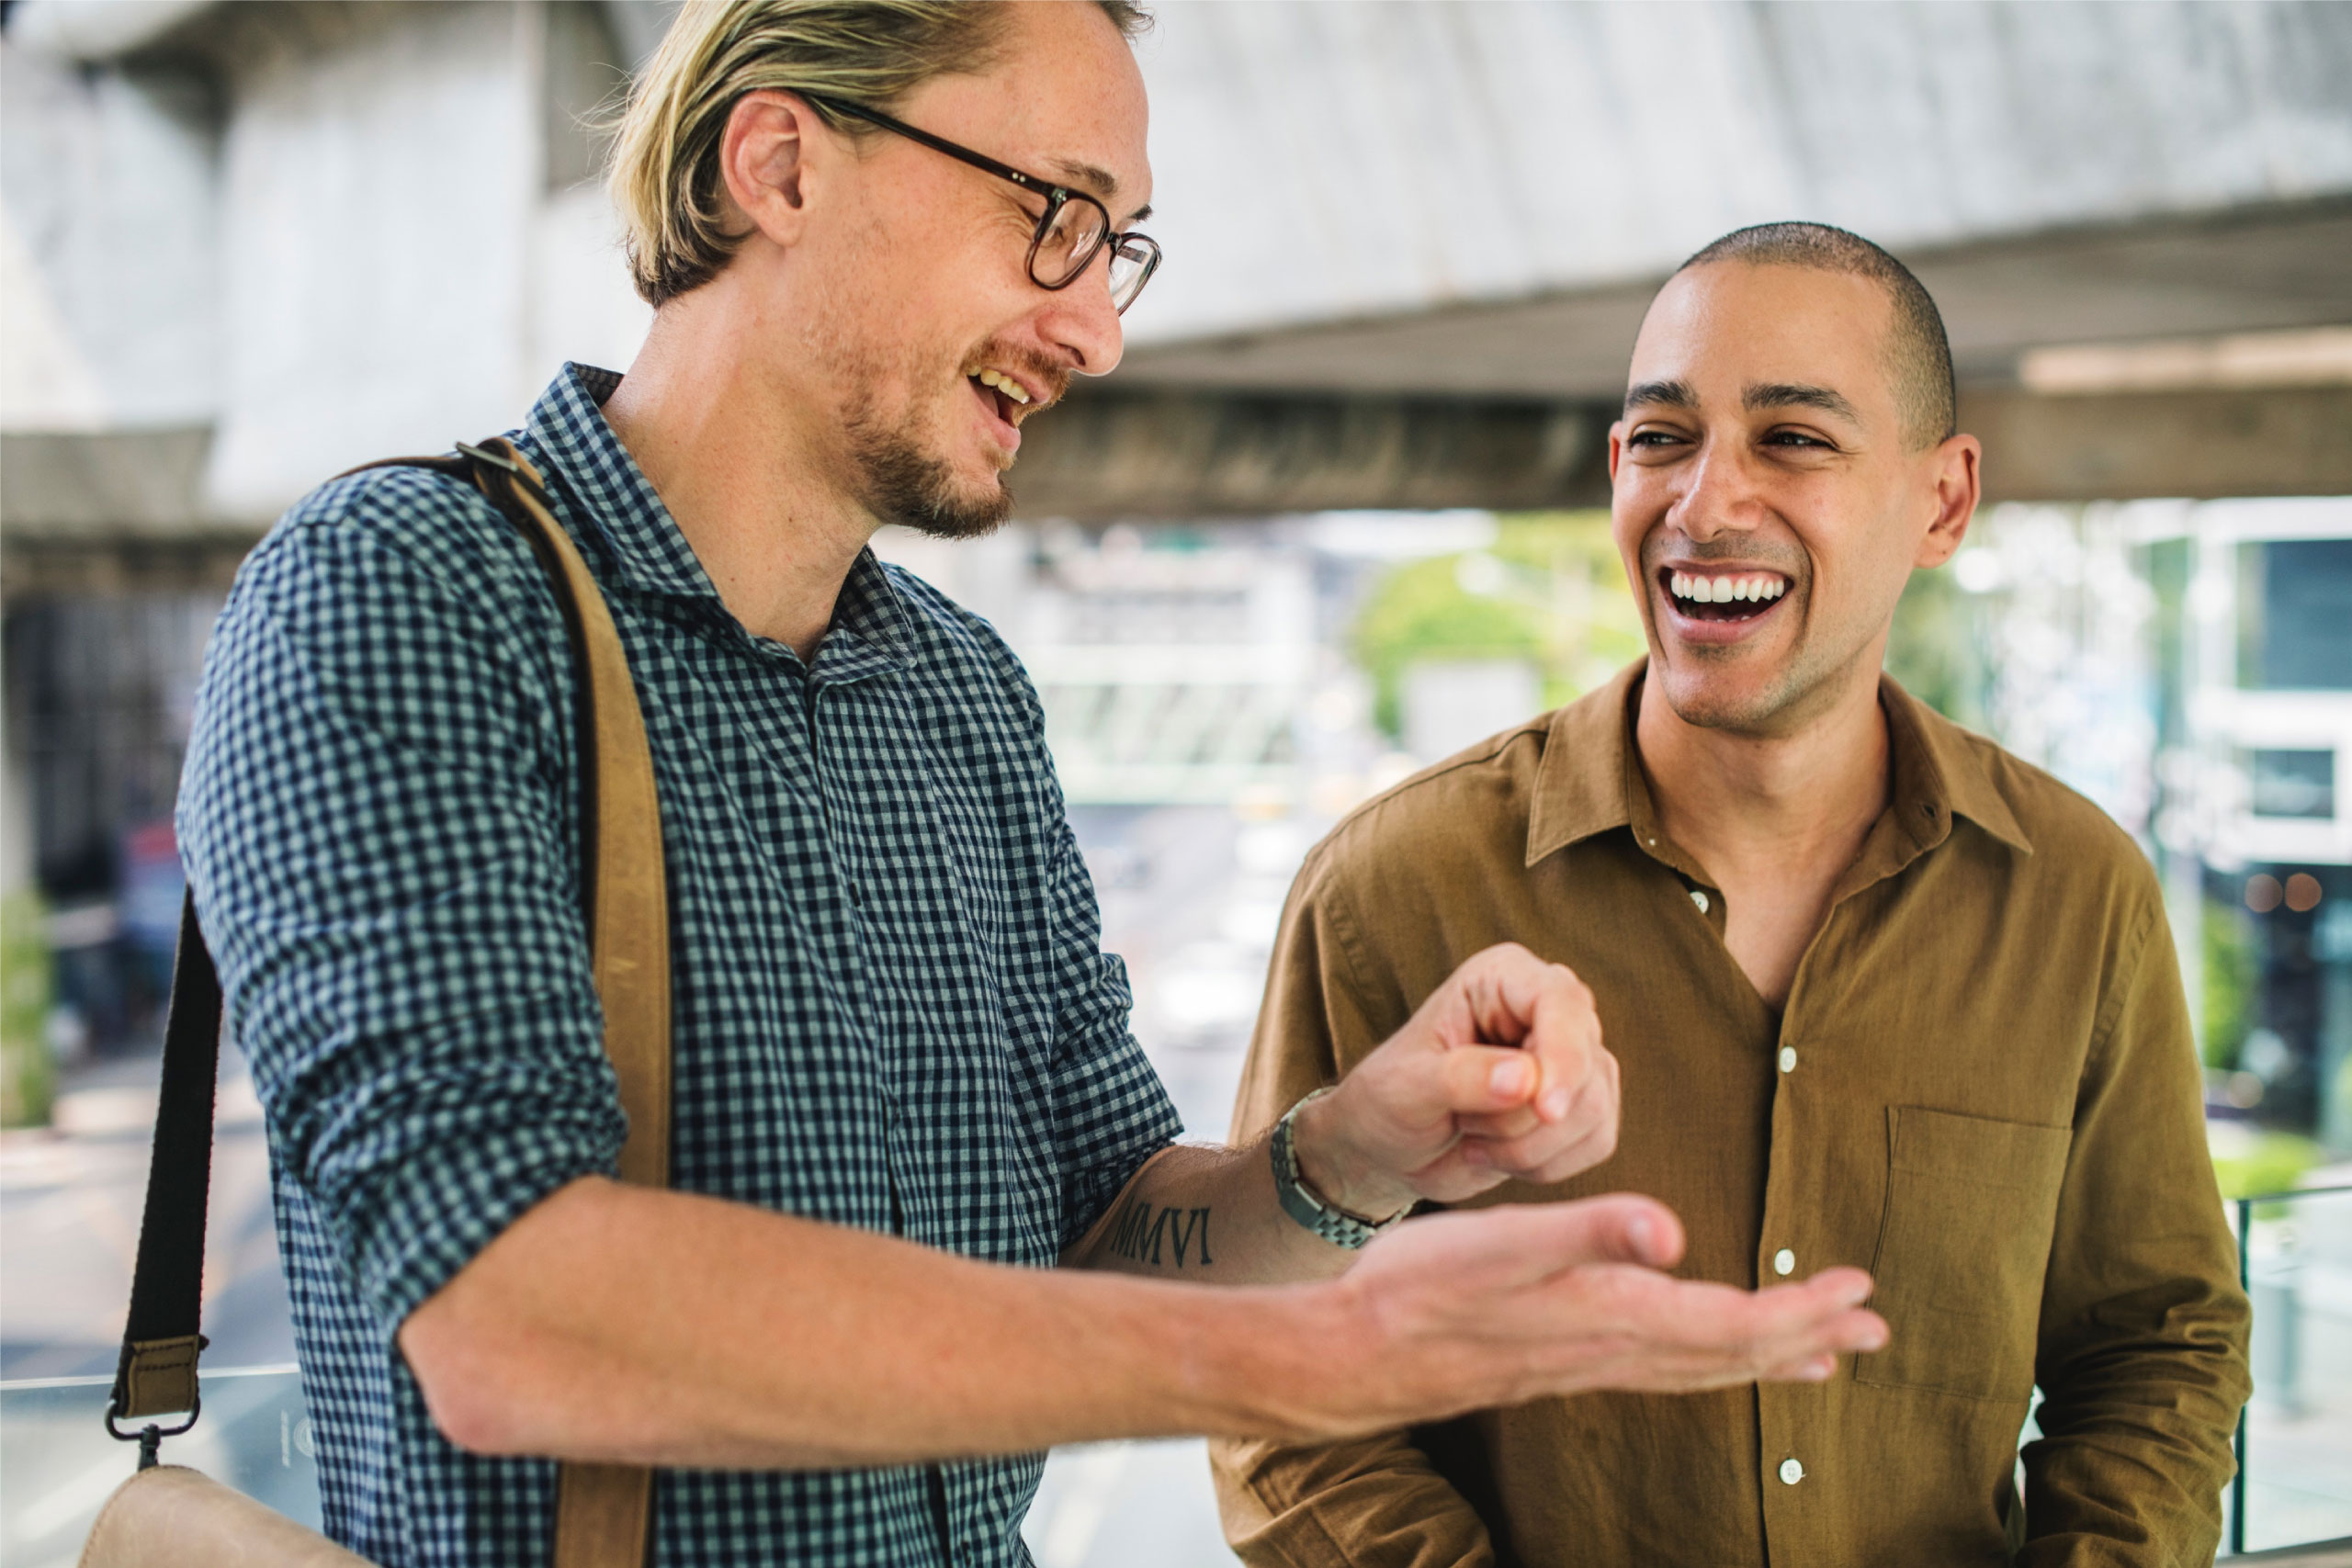 Men laughing